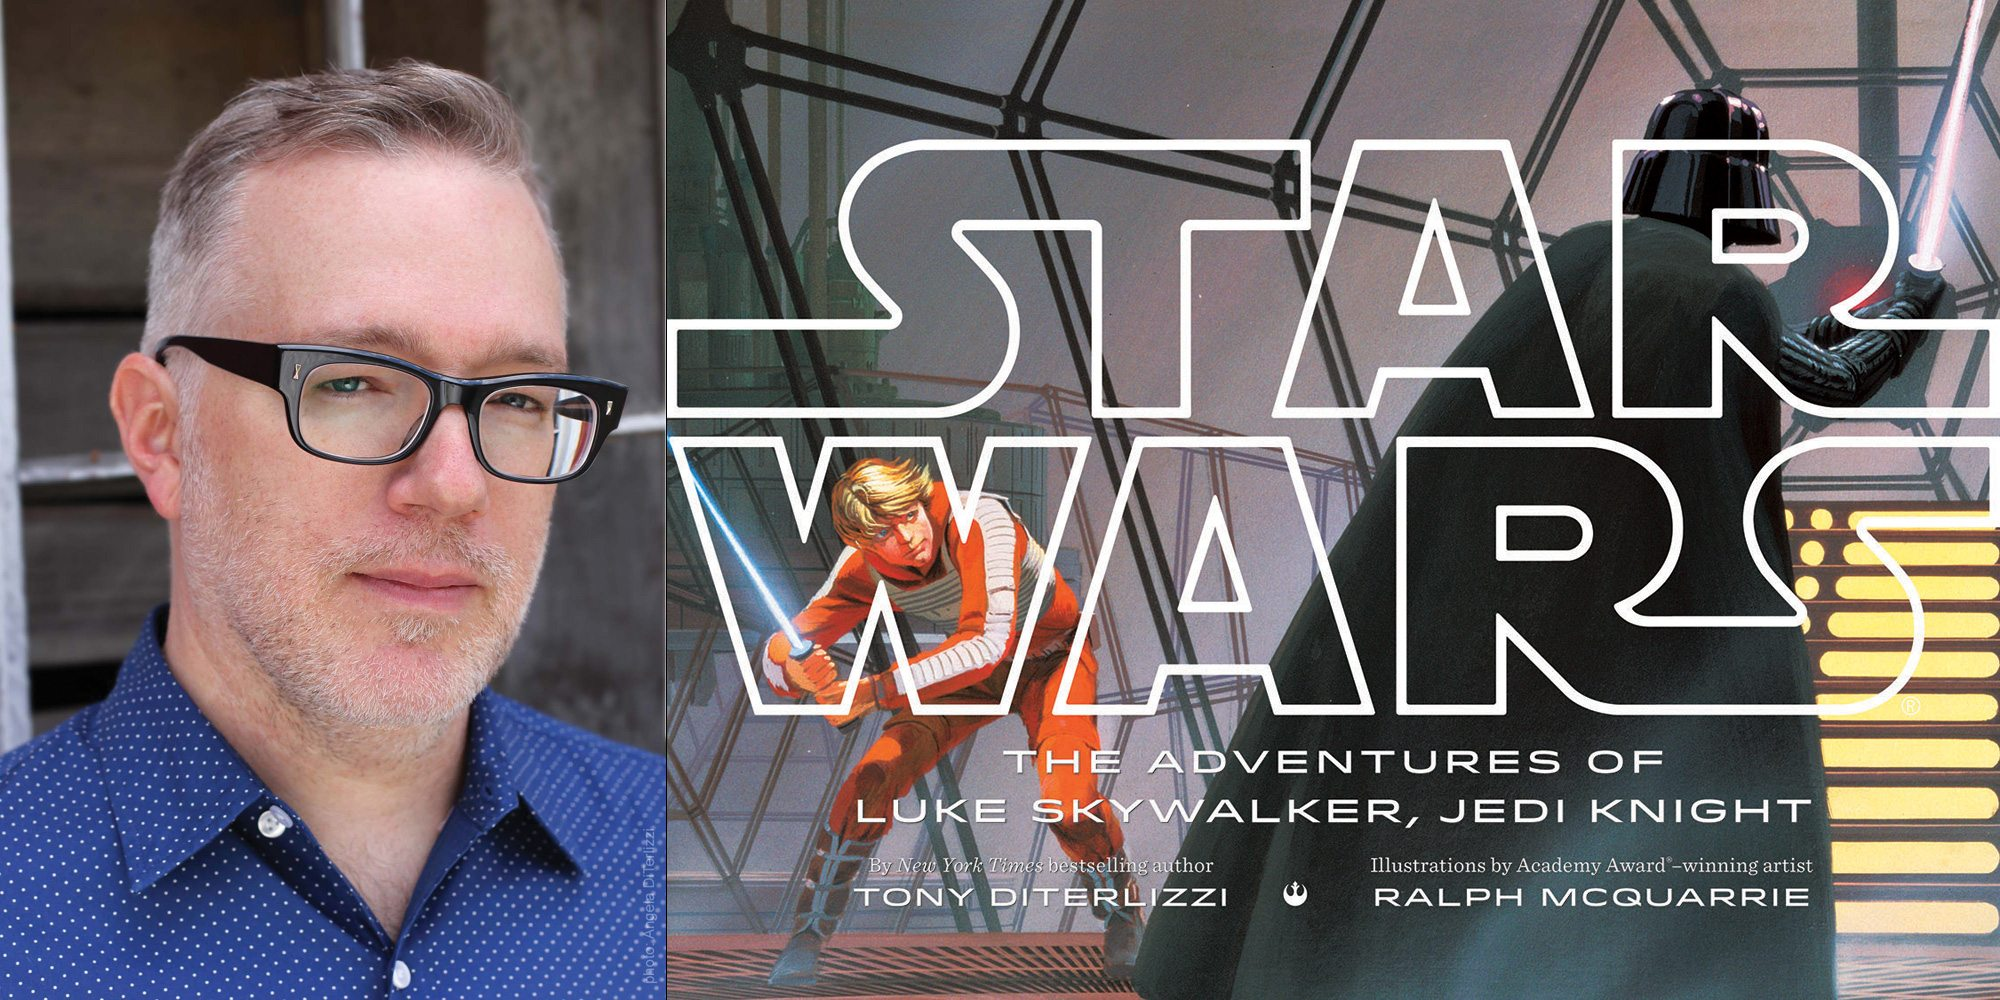 Tony DiTerlizzi, Star Wars cover